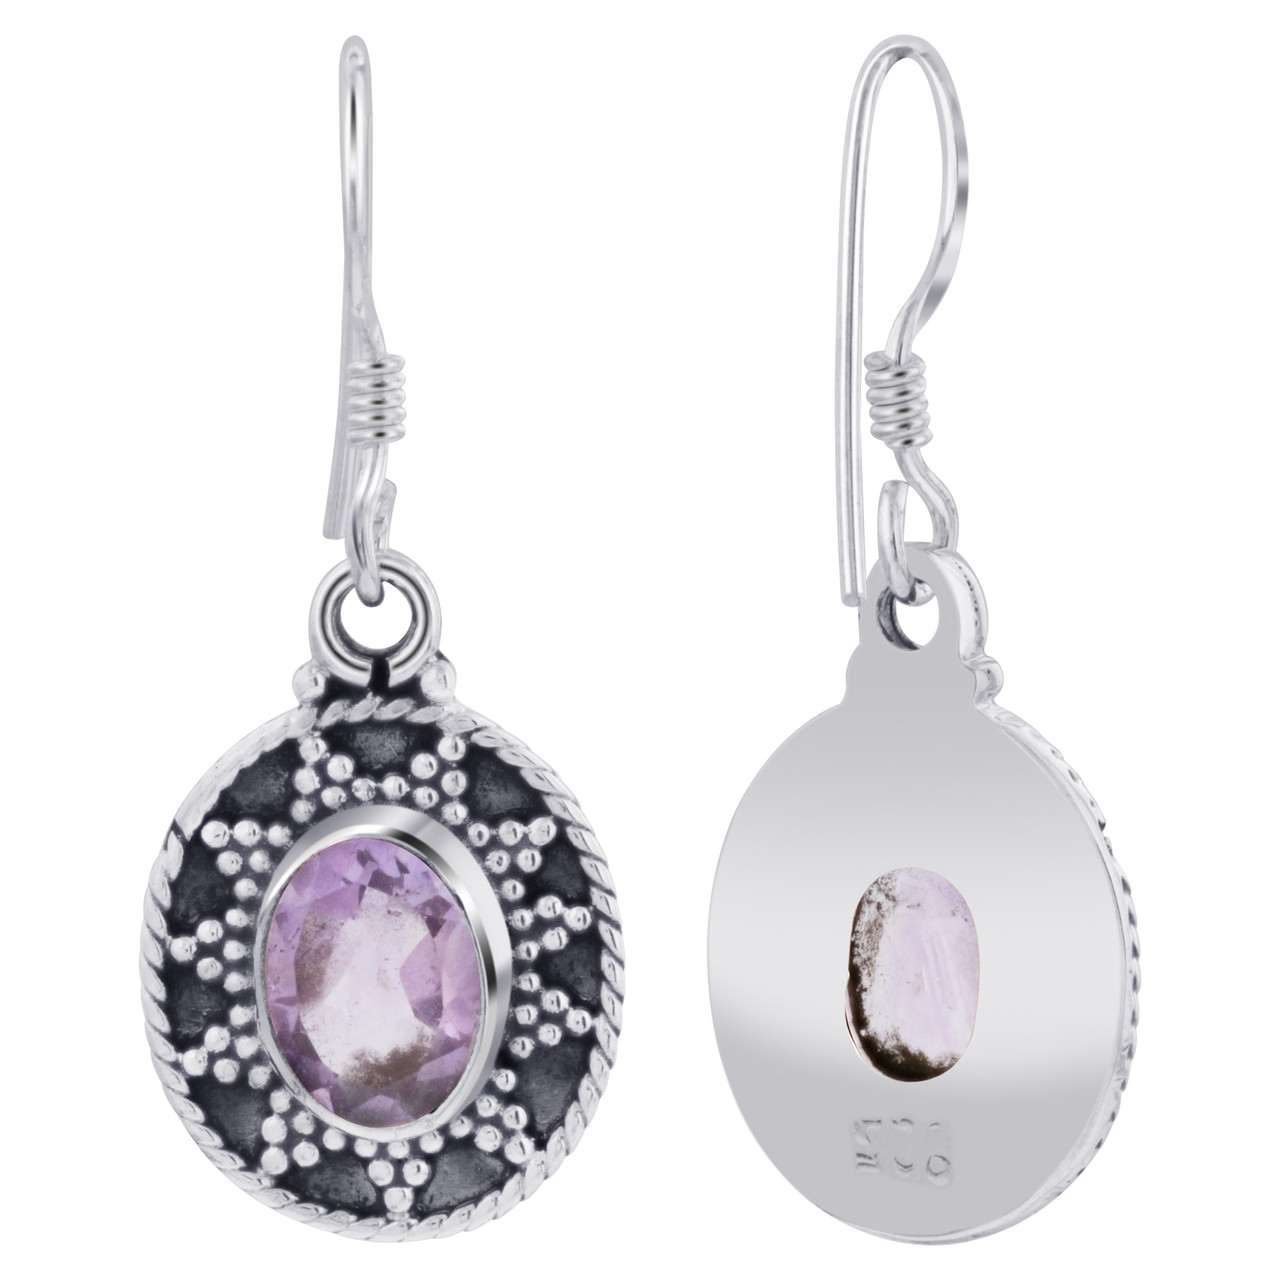 925 Silver Bali Design Oval Amethyst Gemstone Earrings